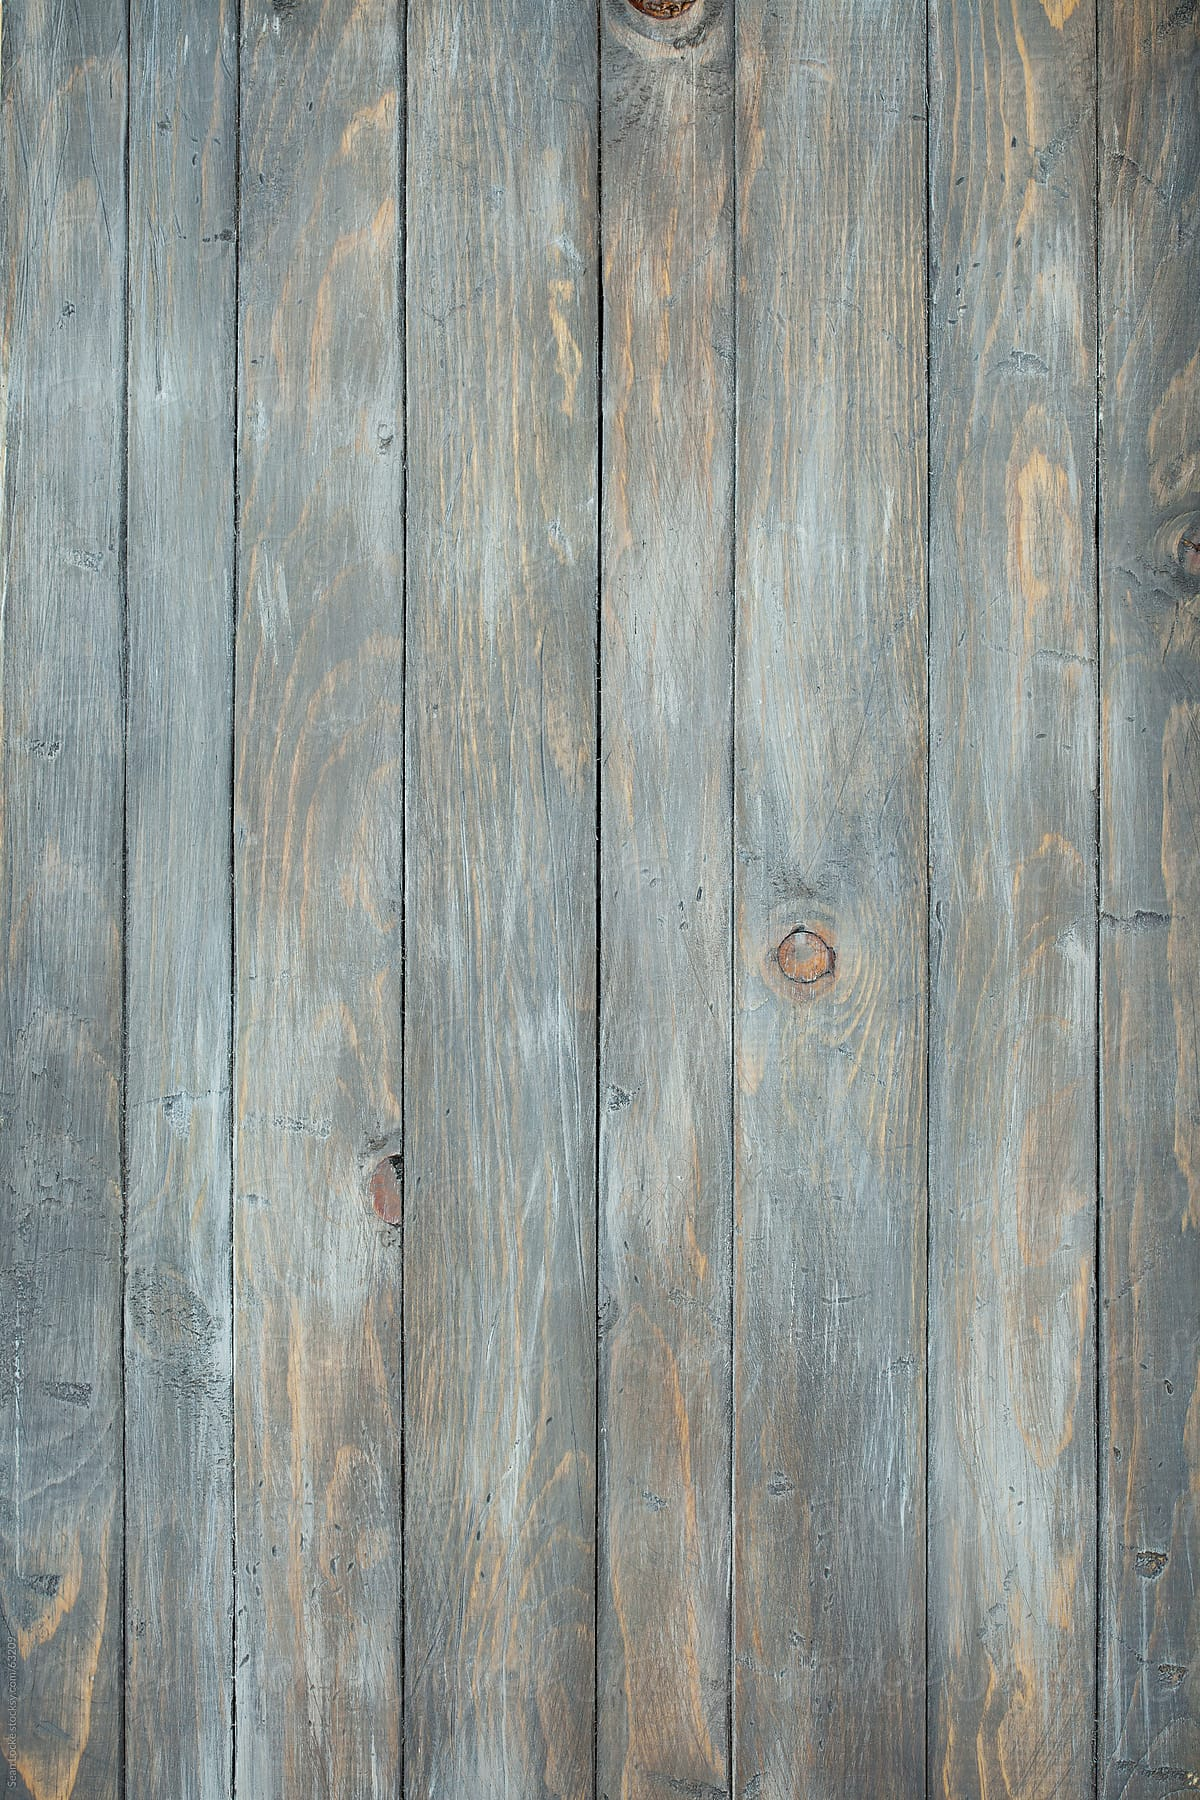 worn and weathered wood background